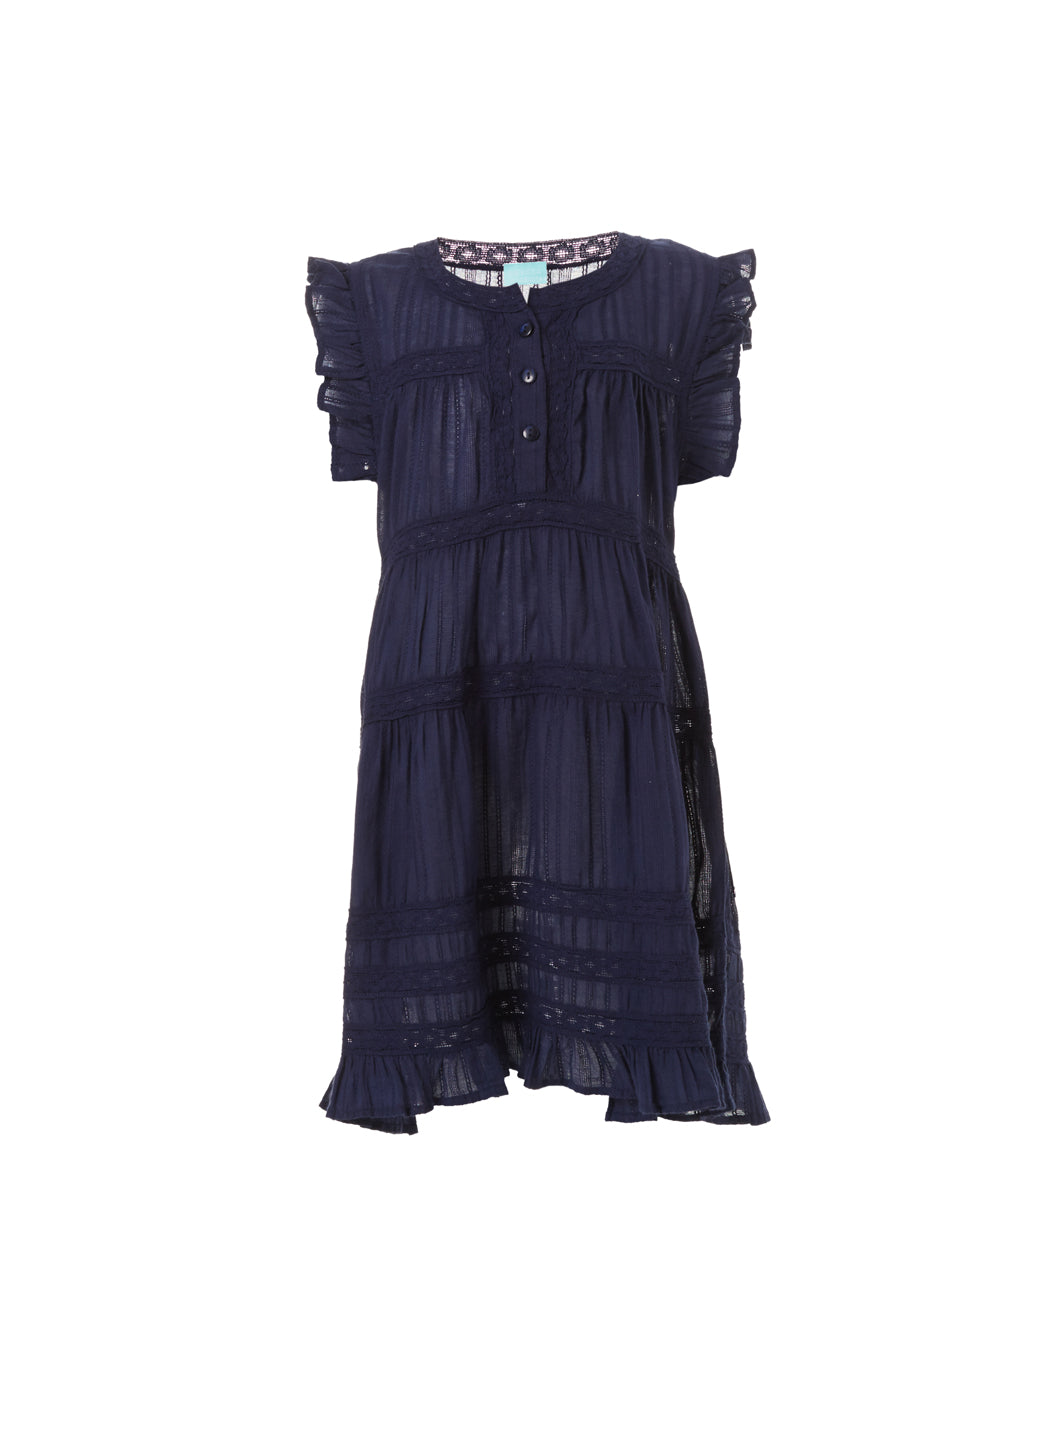 Baby Rebekah Navy Smock Dress